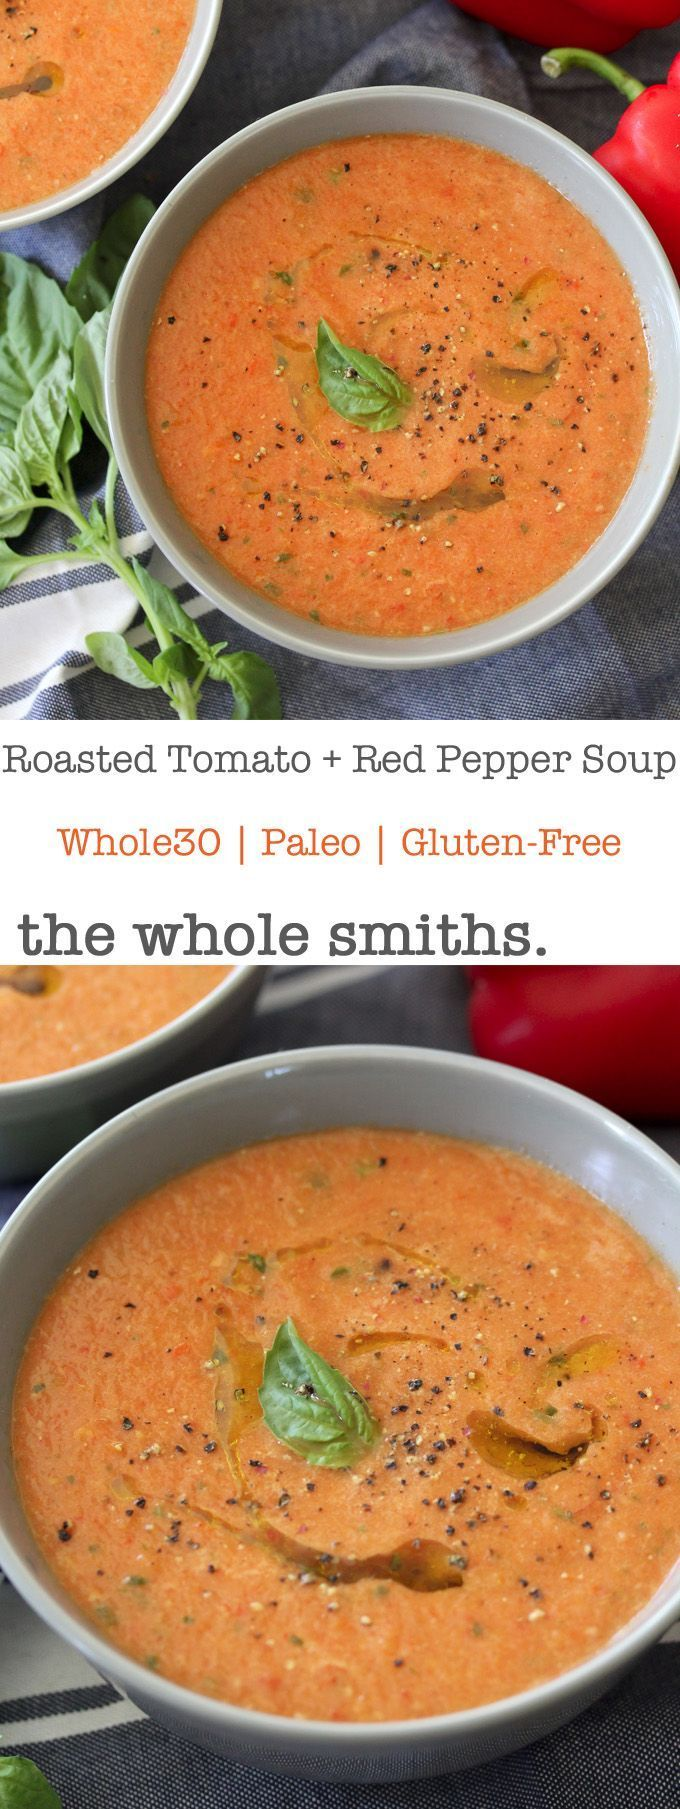 A cozy easy-to-make Whole30 compliant Roasted Tomato + Red Pepper Soup recipe from the Whole Smiths. Great as a side dish or topped with a fried egg or two for a complete meal. MUST make!